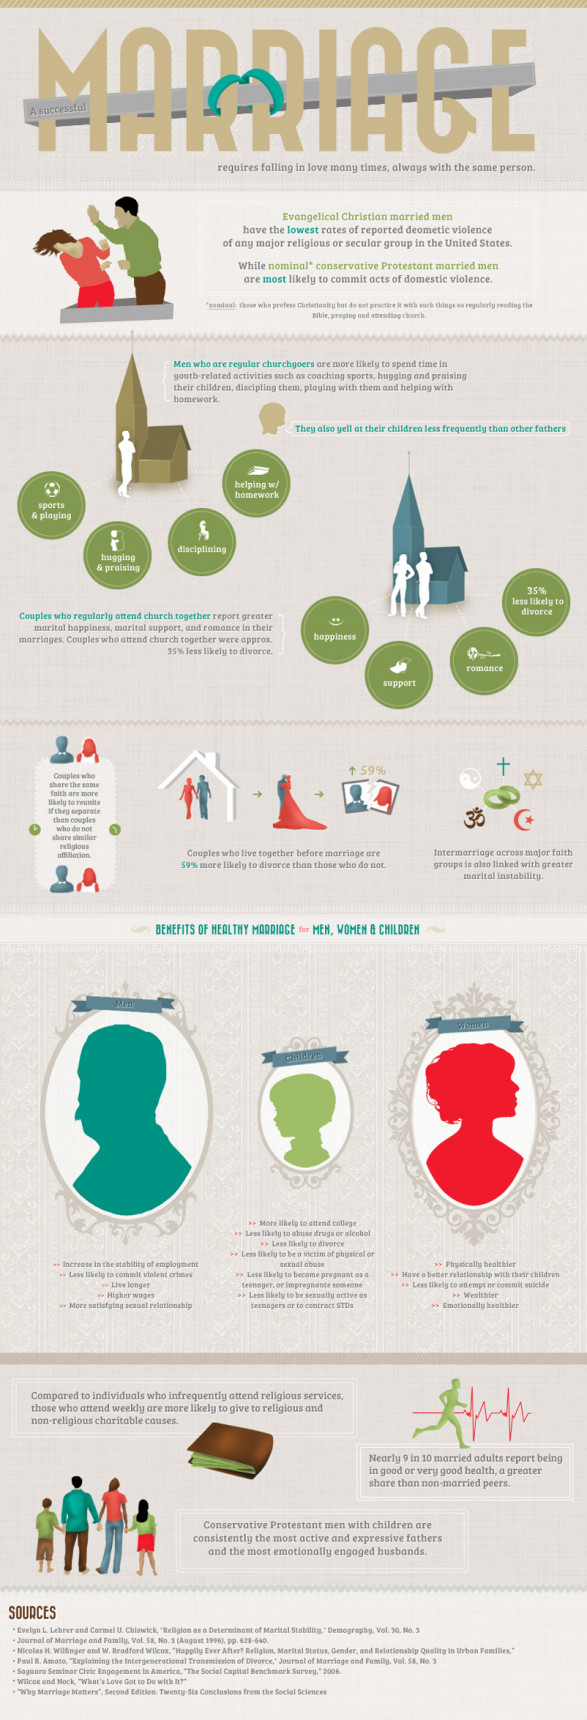 Marriage Infographic